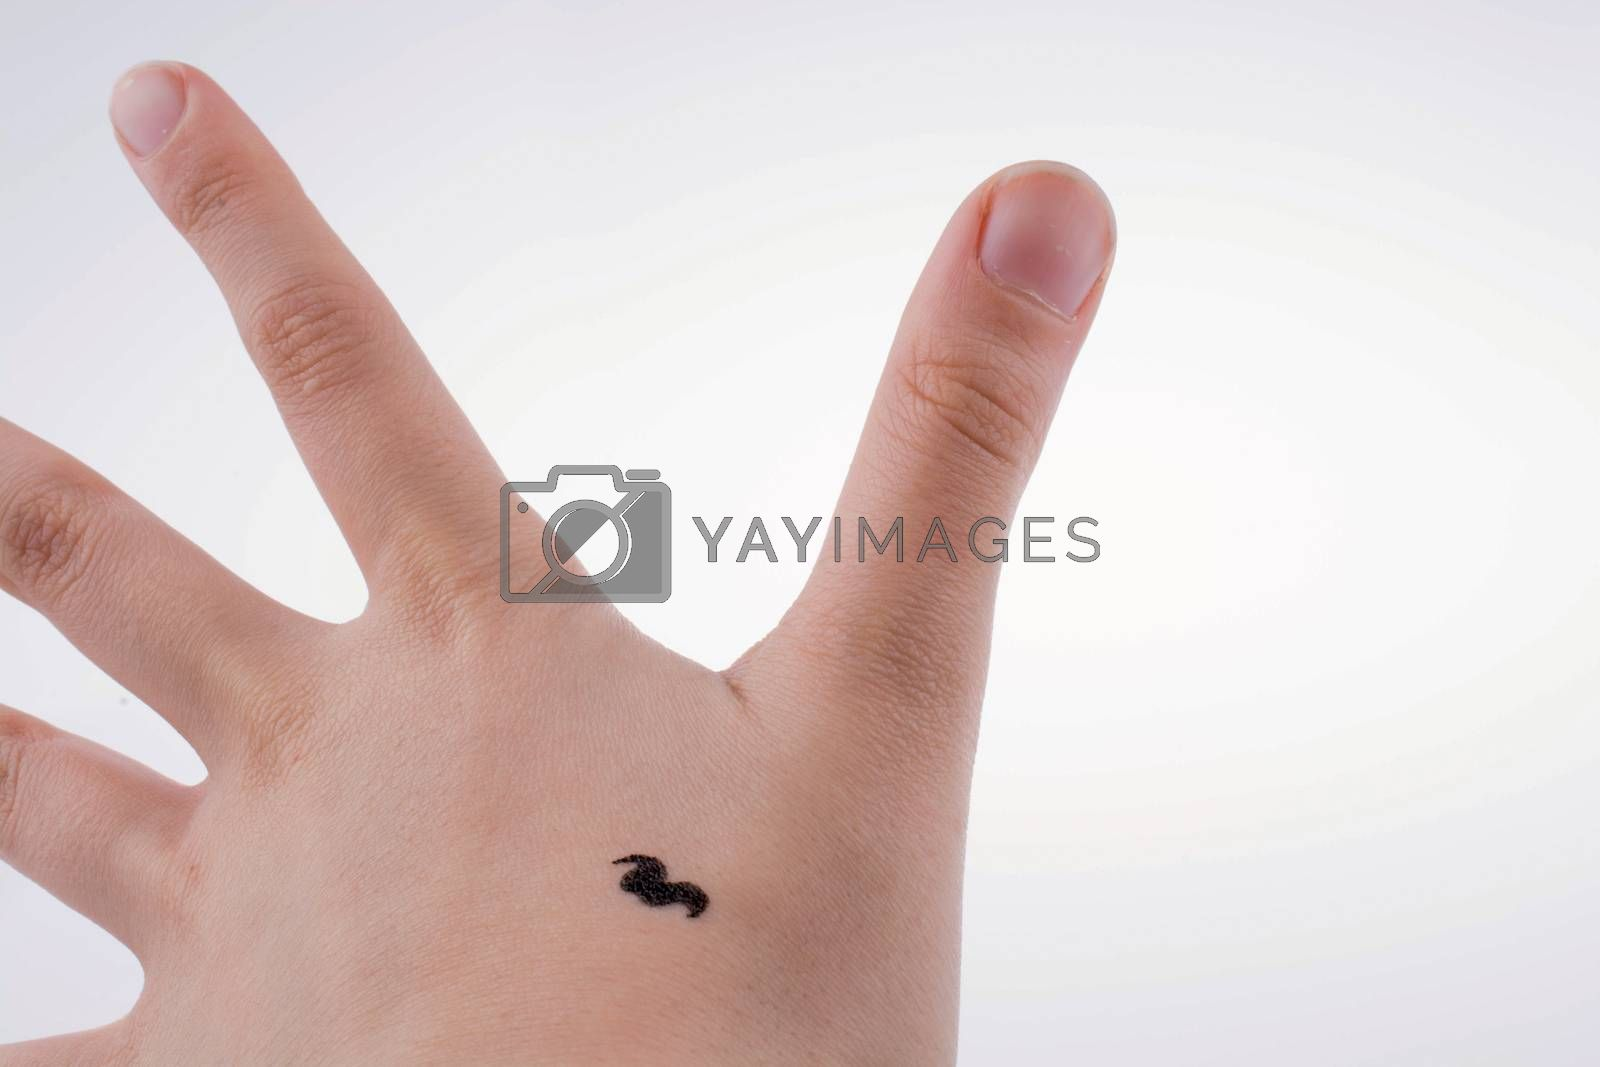 moustache design on a hand by berkay